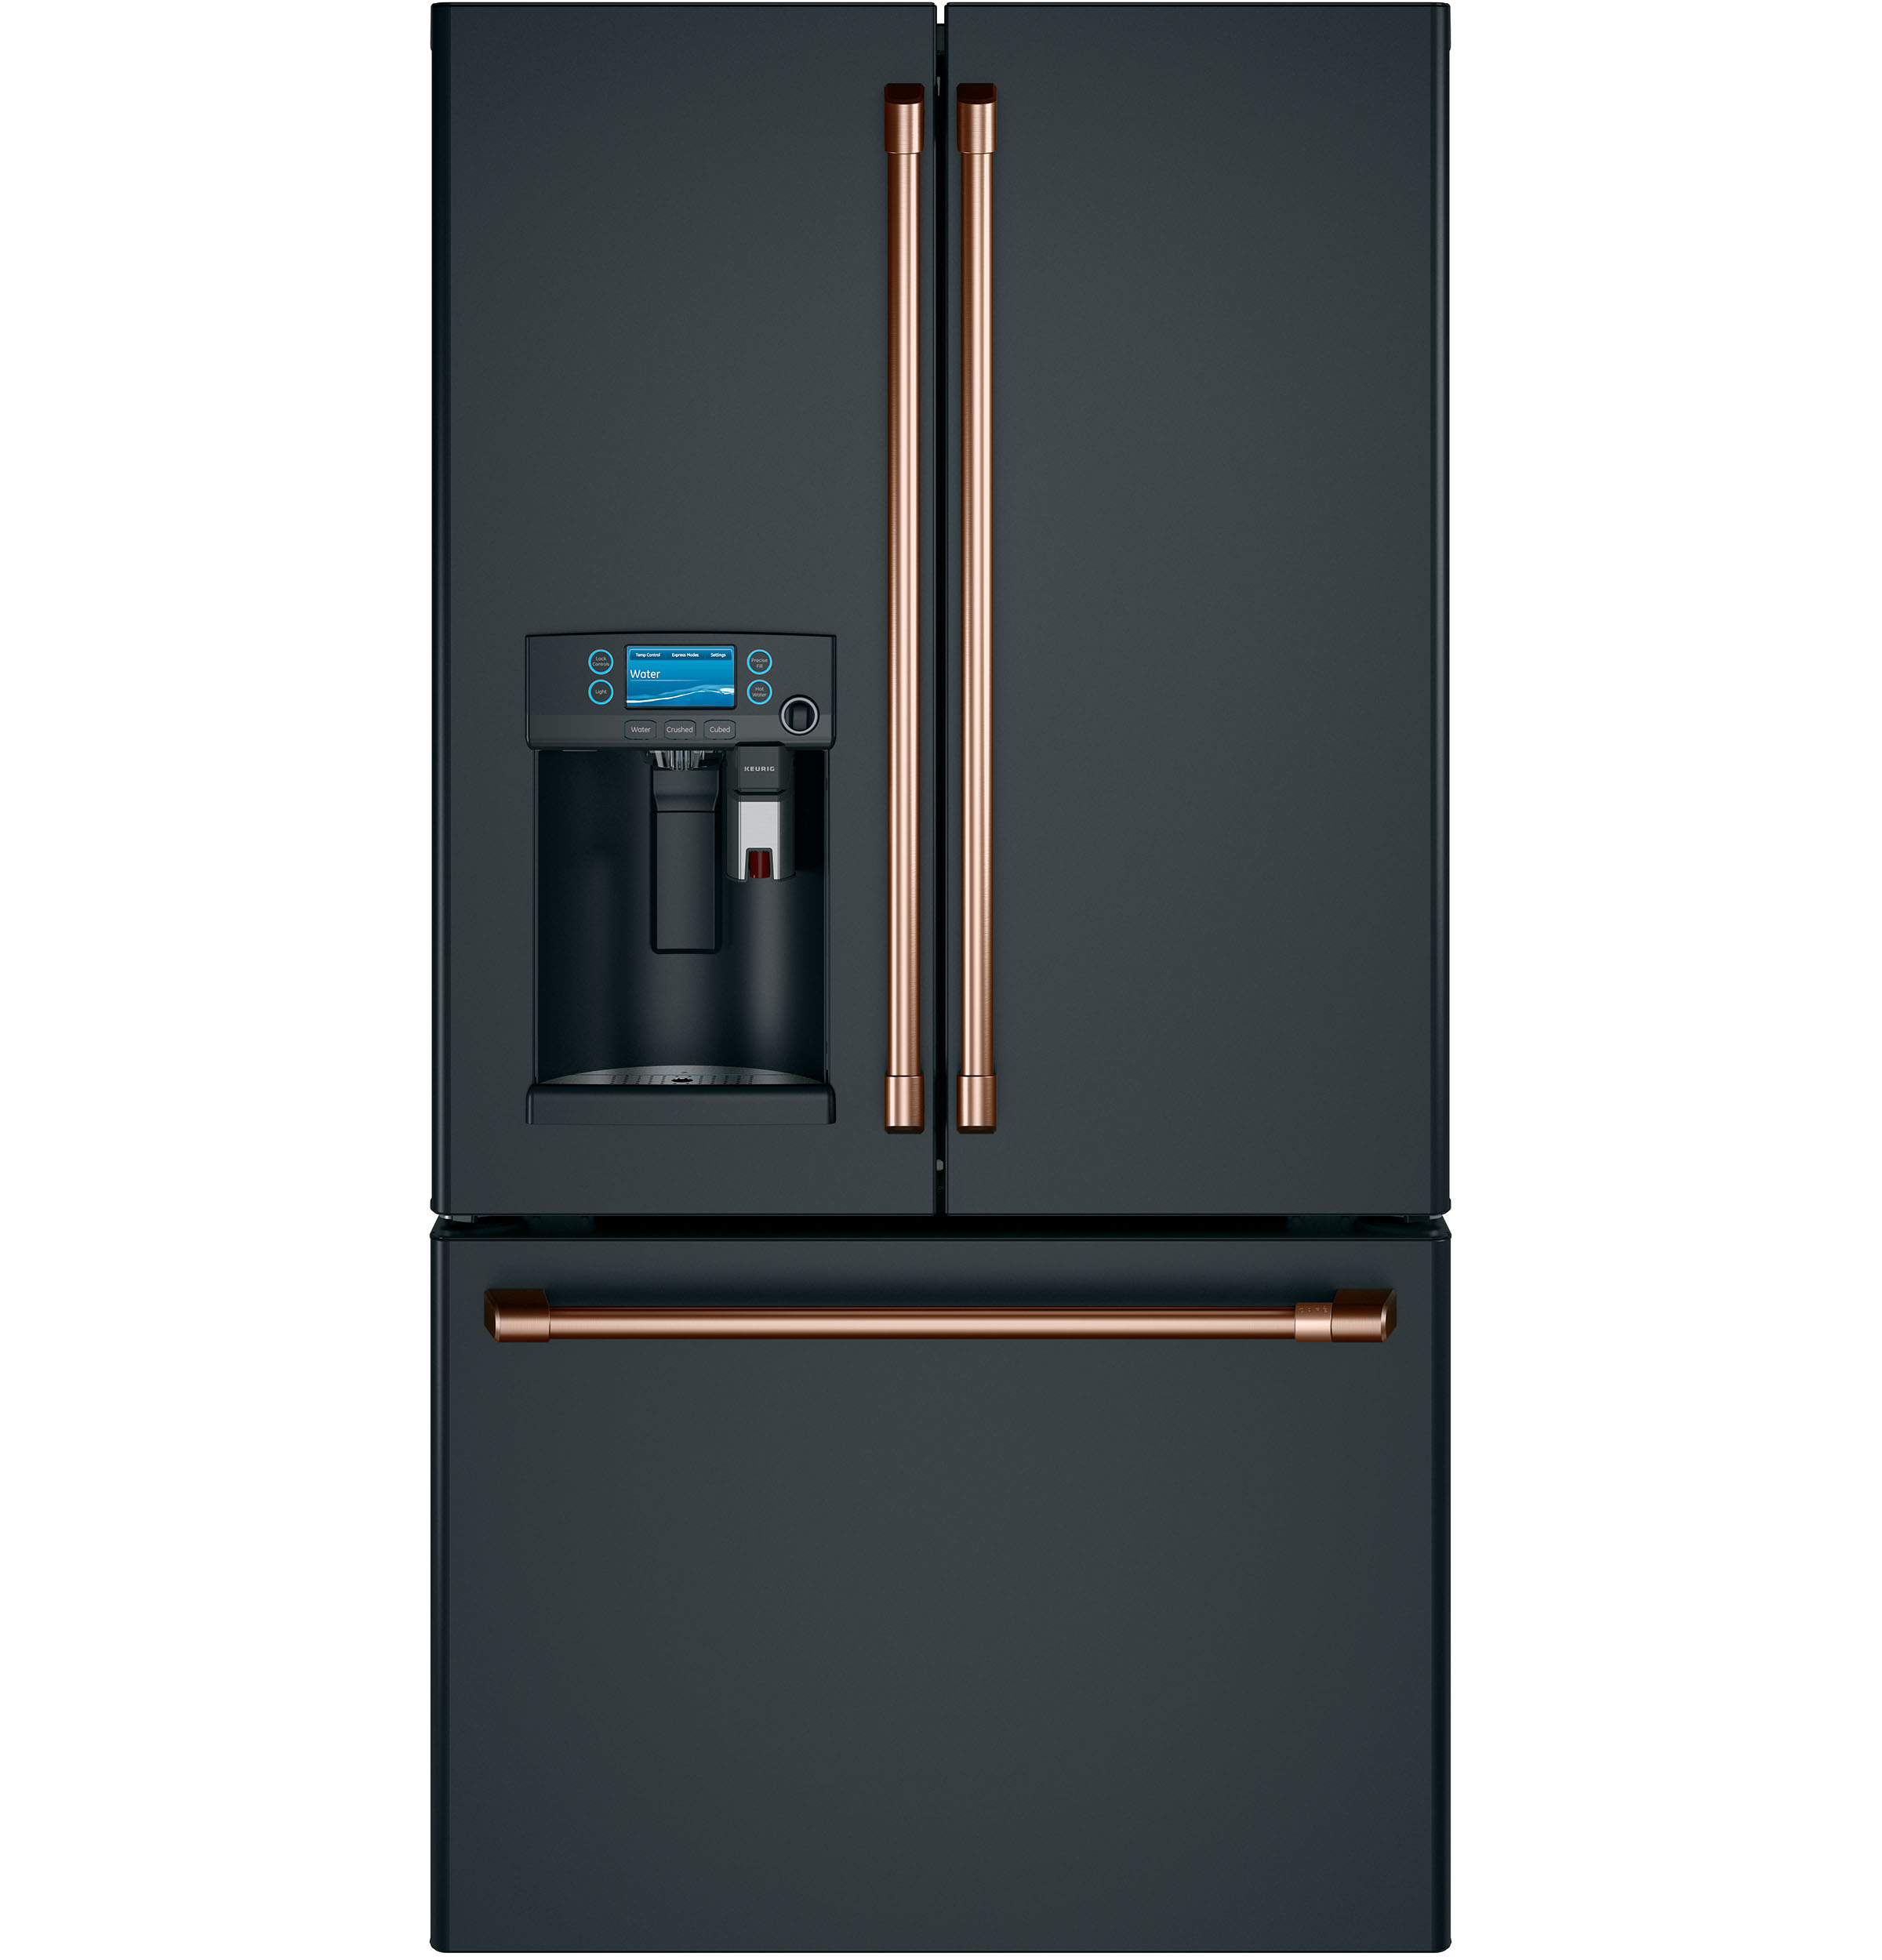 Model: CYE22UP3MD1 | Cafe Café™ ENERGY STAR® 22.2 Cu. Ft. Counter-Depth French-Door Refrigerator with Keurig® K-Cup® Brewing System